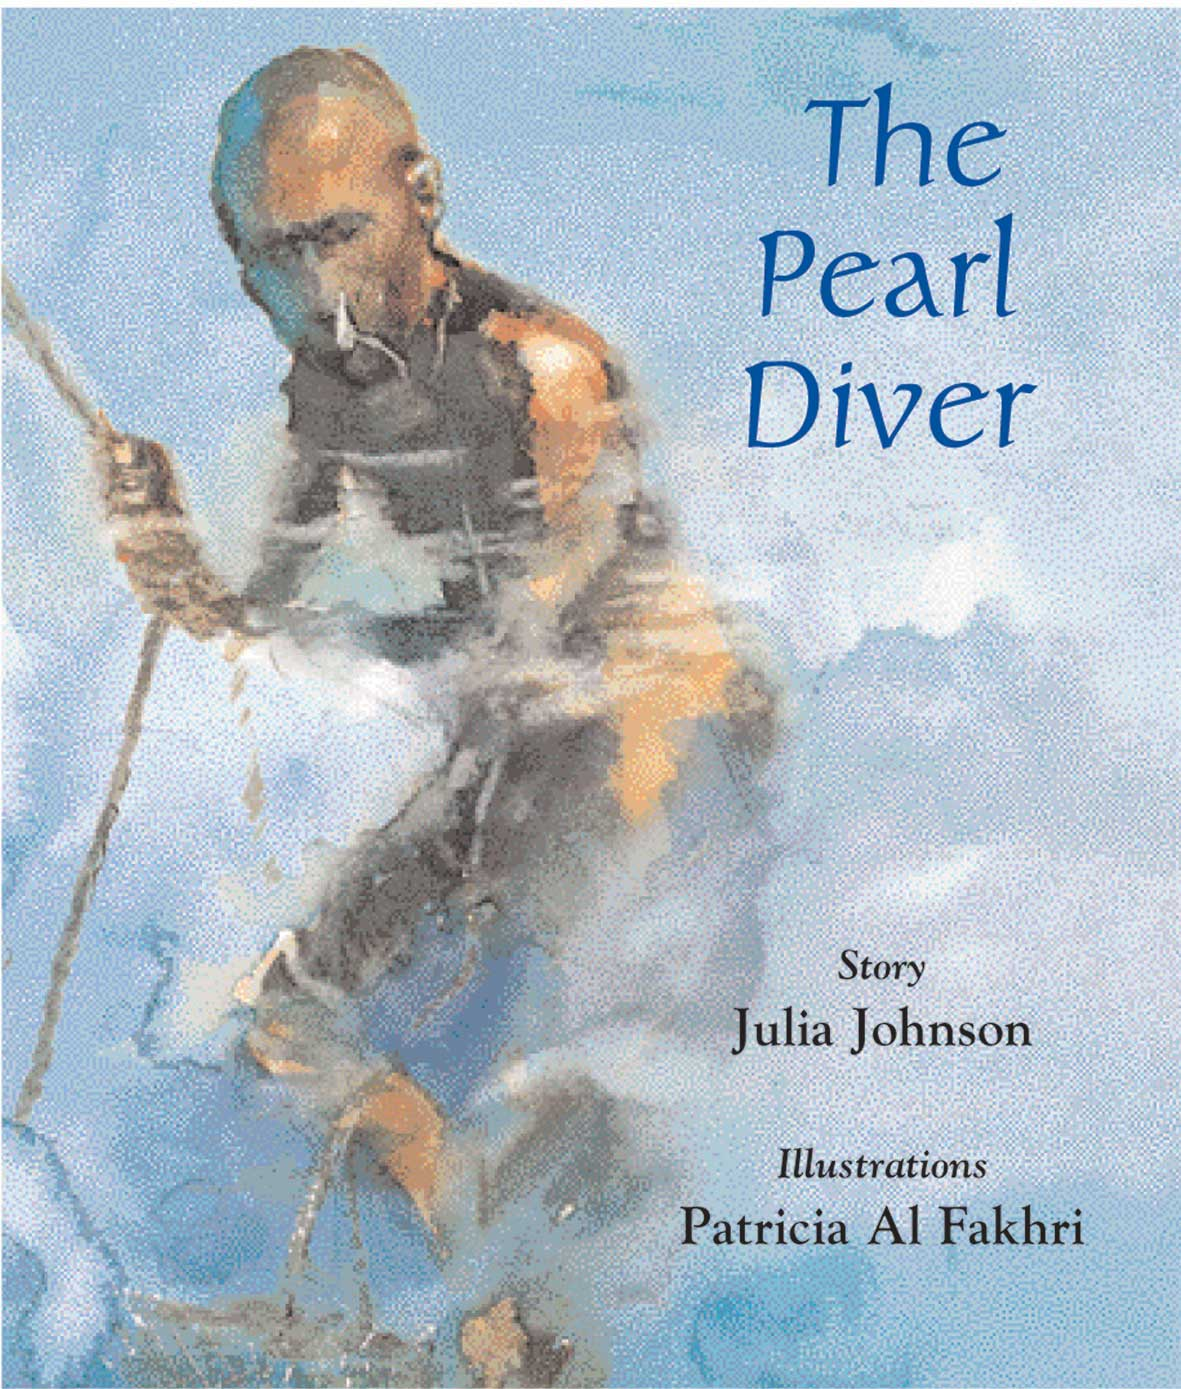 the story of pearl diver kino in the book the pearl The touching novella tells the story of kino, an indian pearl diver, who was living   book covers around the world: the pearl by john steinbeck.